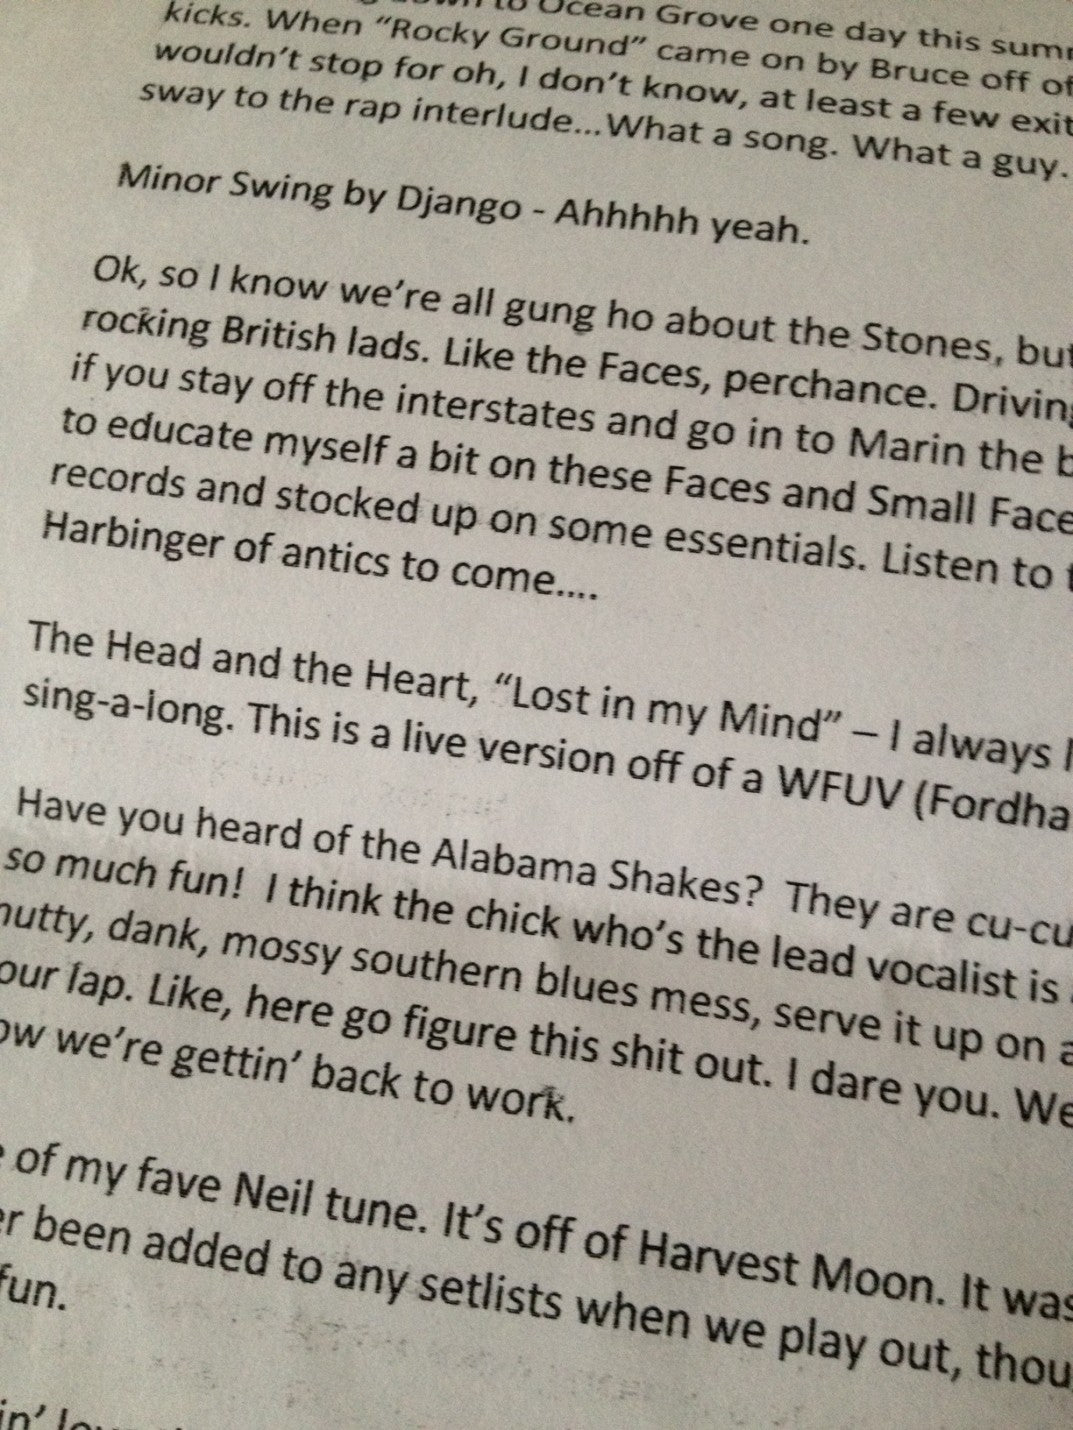 The gift: Amy's liner notes